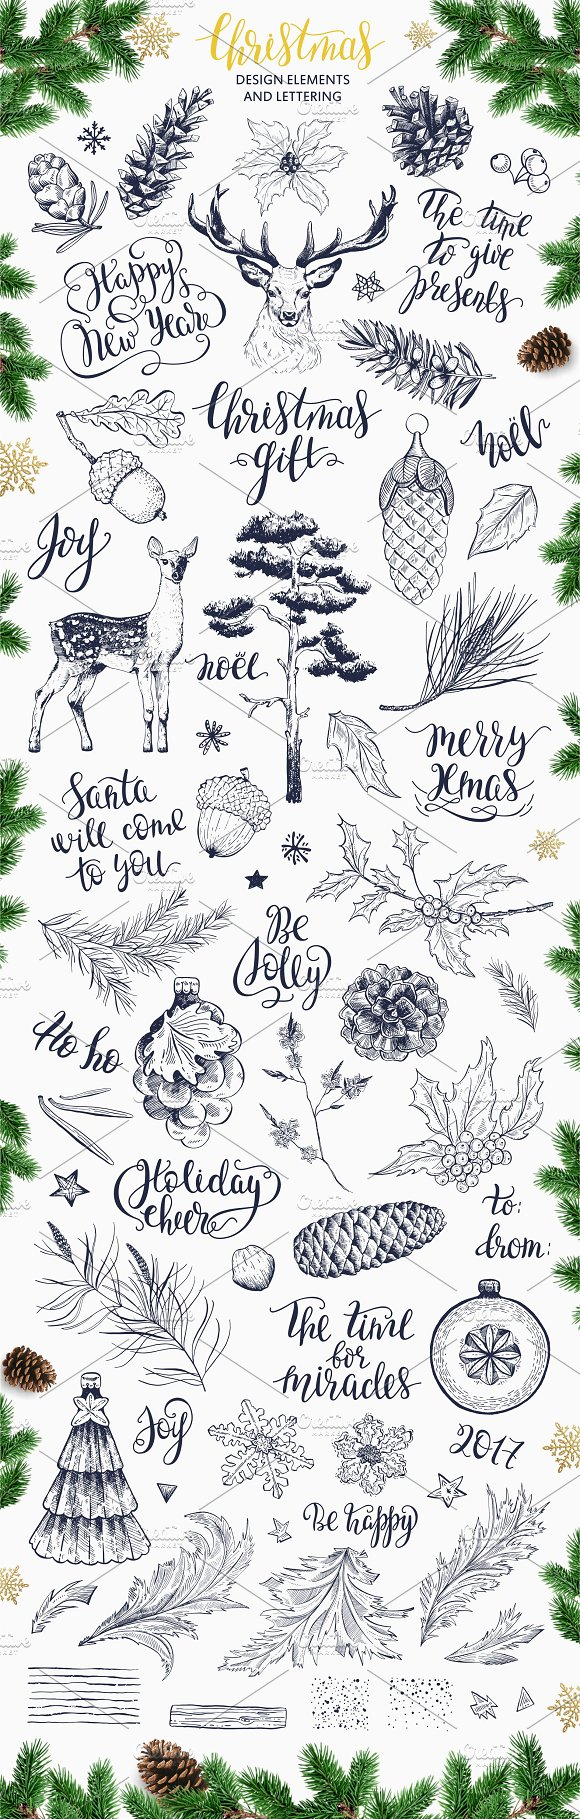 Christmas t Lettering & drawings Illustrations Creative Market